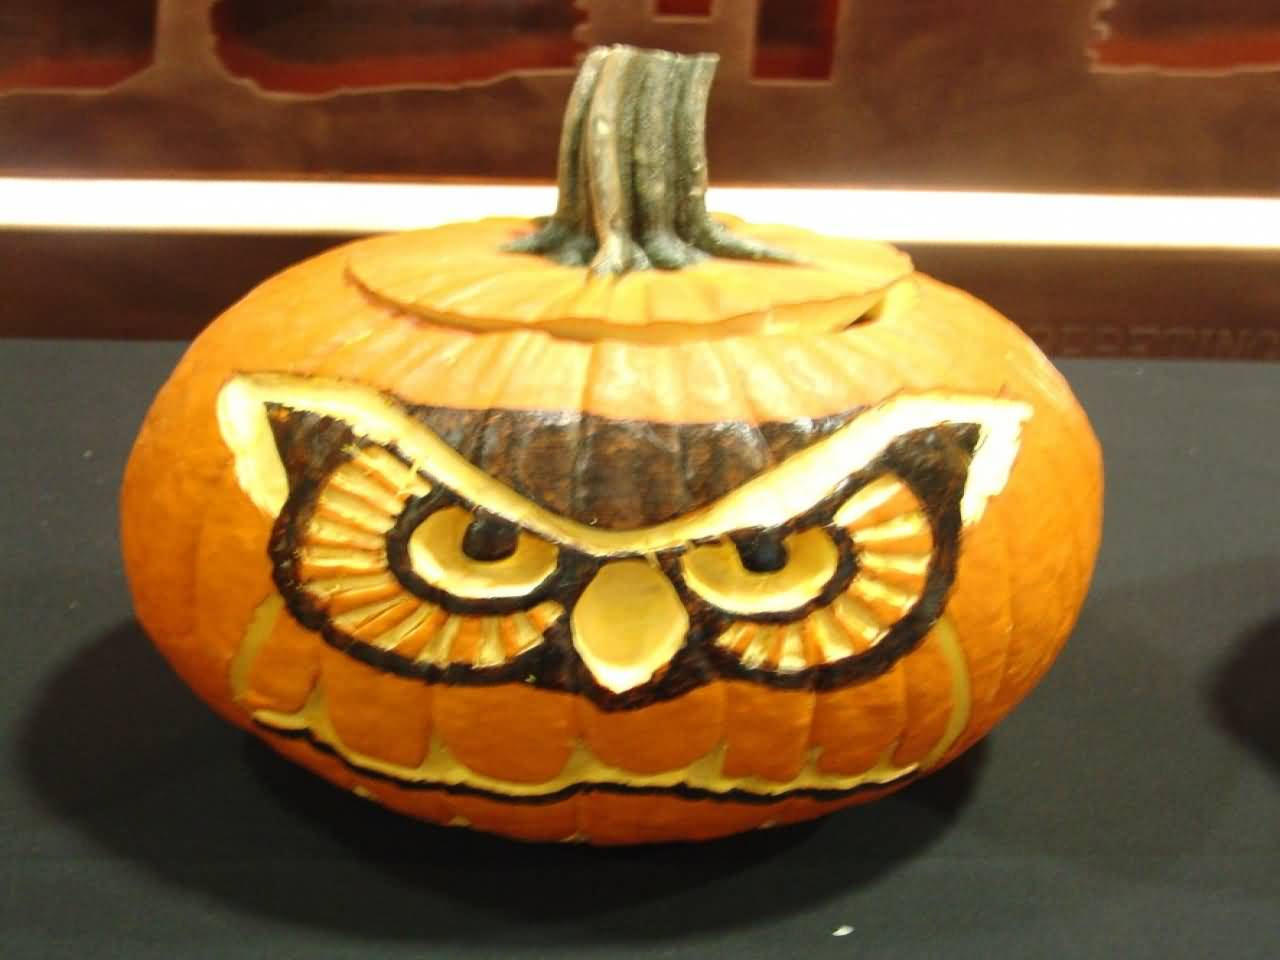 30 Very Funny Pumpkin Images That Will Make You Smile